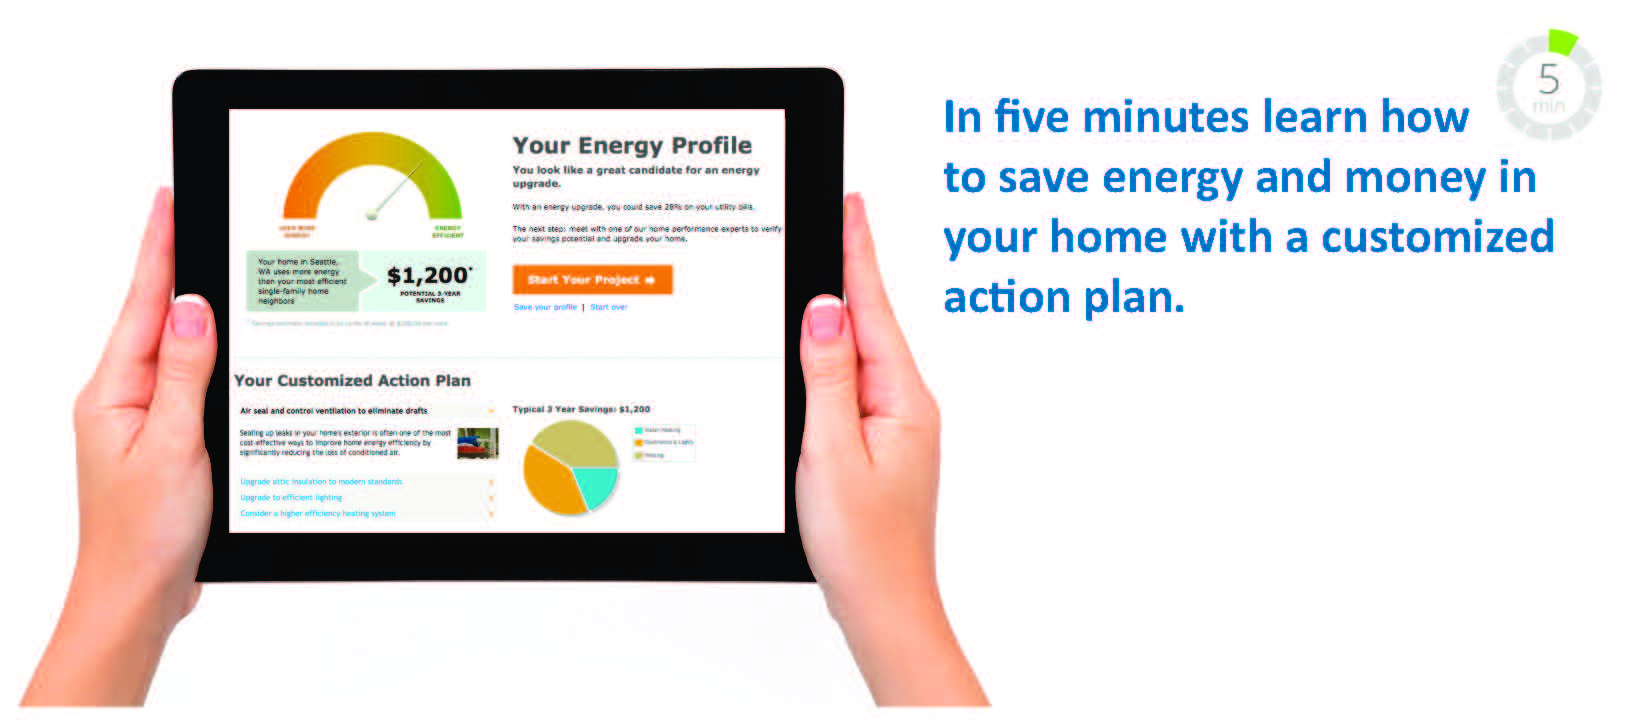 Learn how to save energy and money in your home in five minutes with a customized action plan